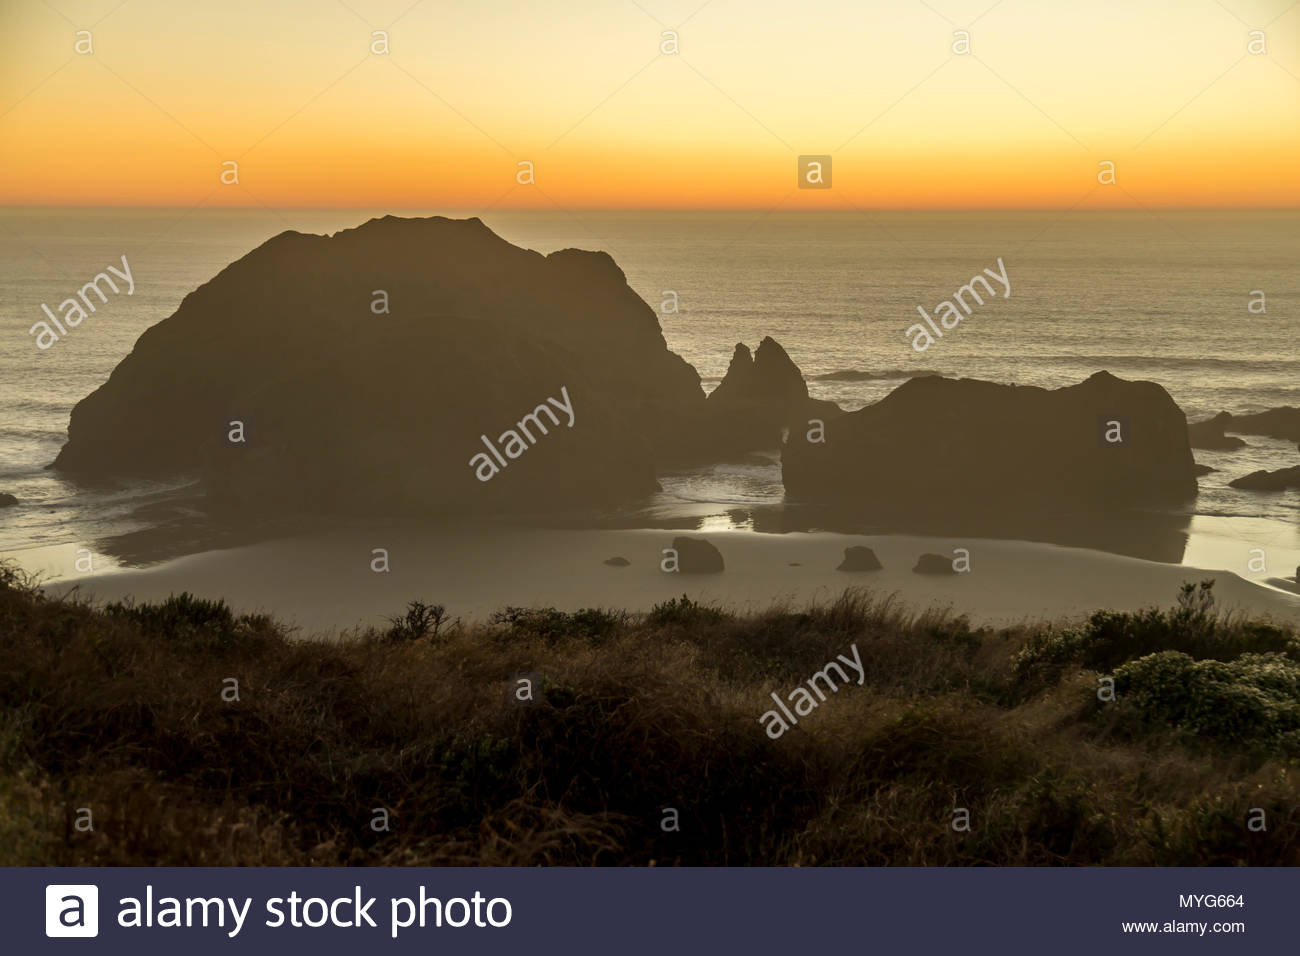 Sisters Rocks State Park along the Oregon Coastal Highway. - Stock Image